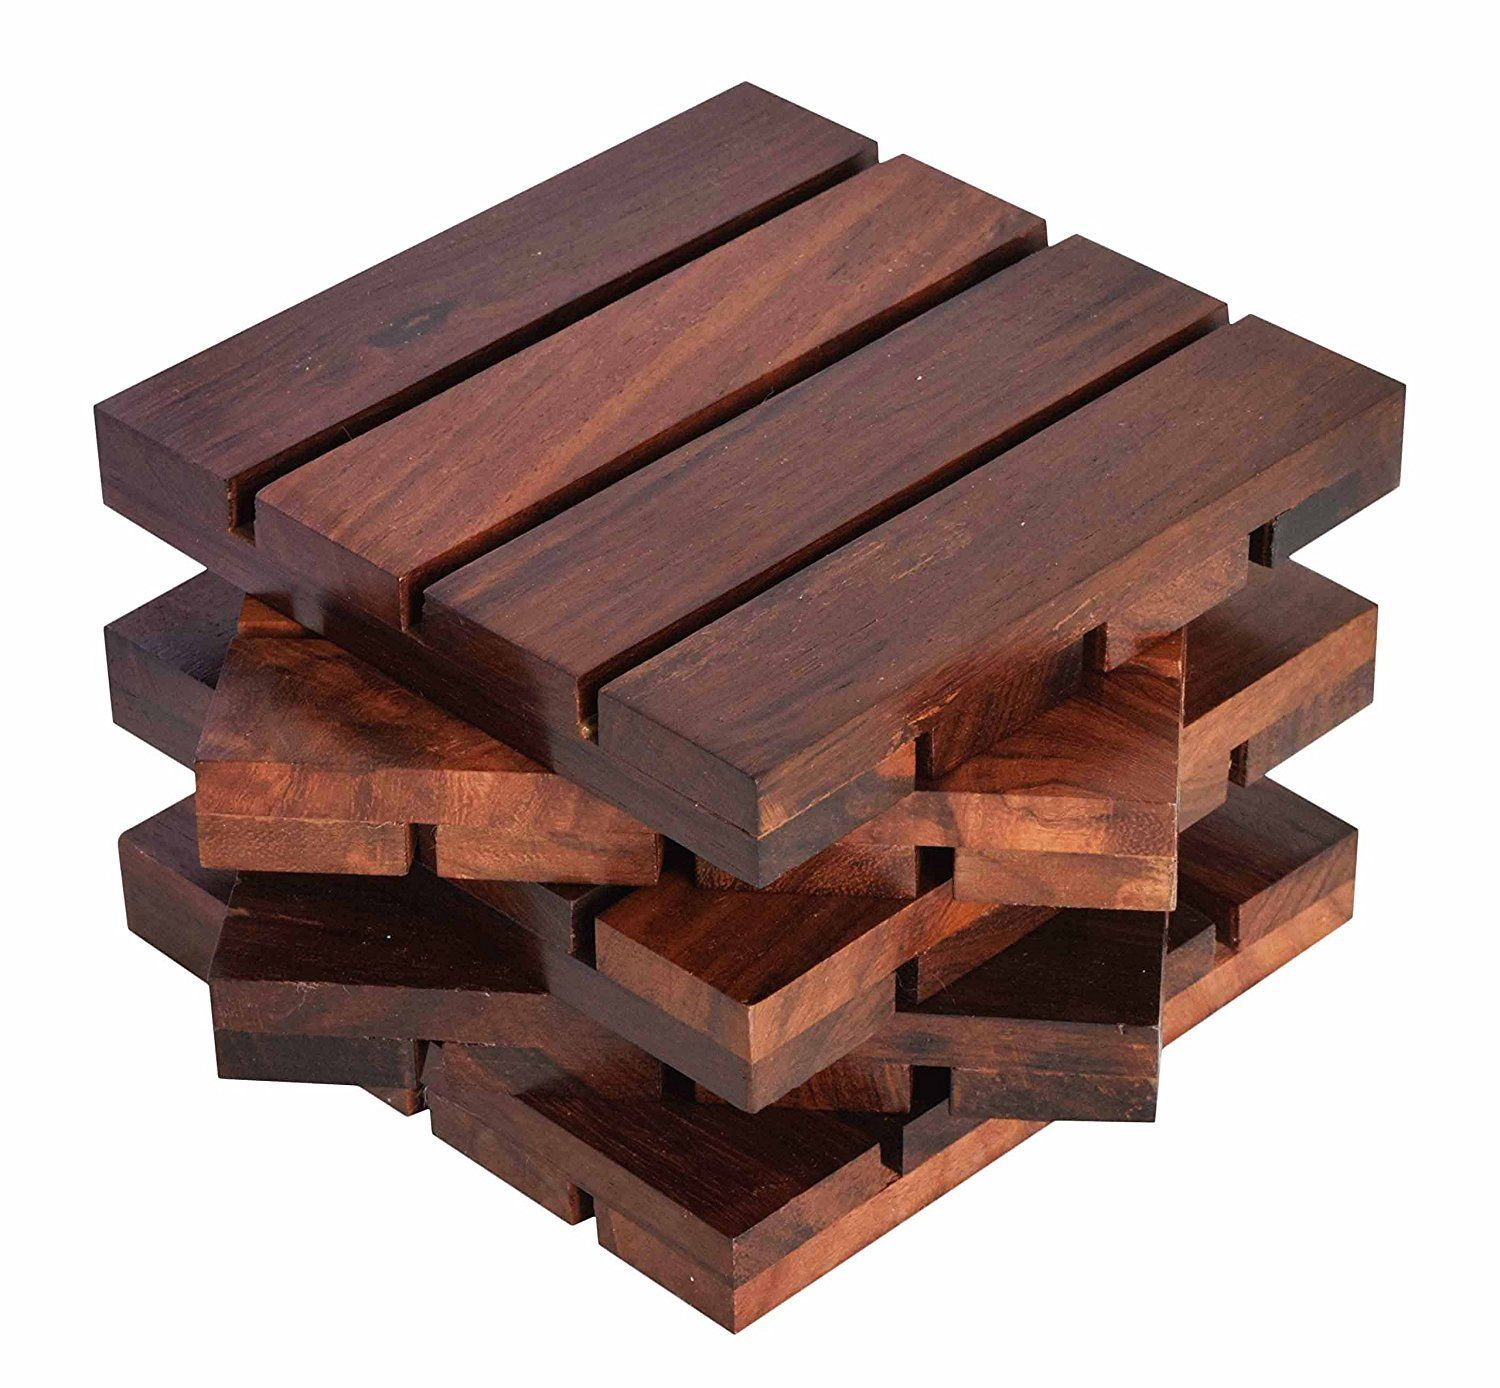 Hashcart Coasters In Sheesham Wood Indian Rosewood For